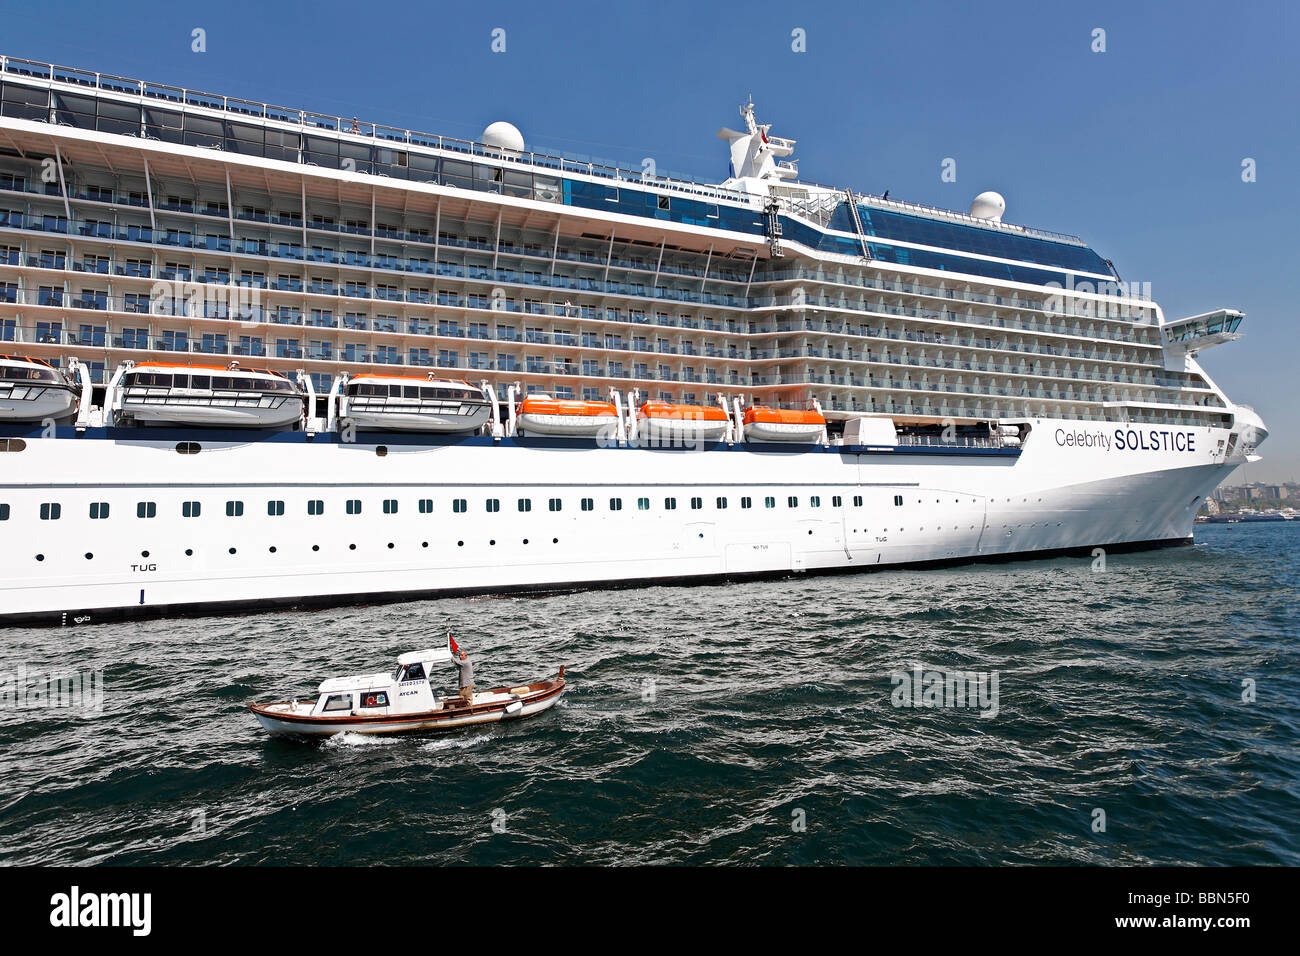 Tiny Boat Goes Past The Huge Cruise Ship Celebrity Solistice Stock - Huge cruise ship